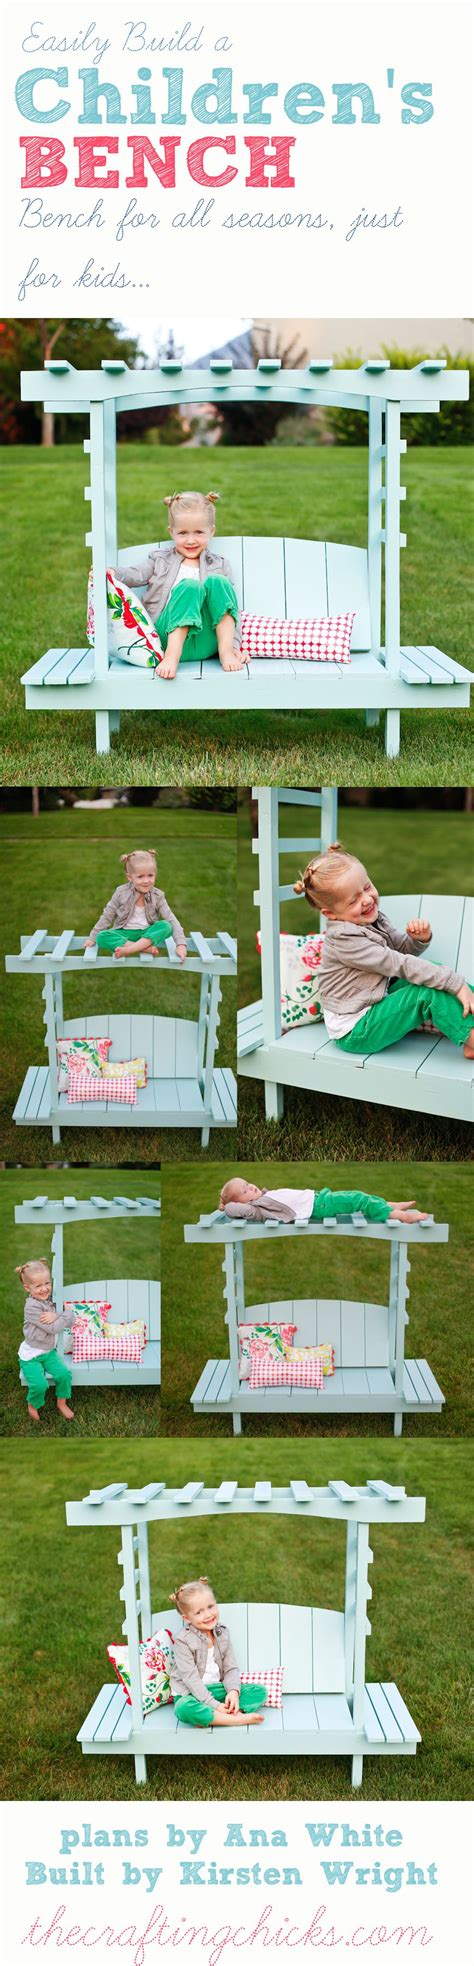 Woodworking-Plans-For-Childrens-Bench